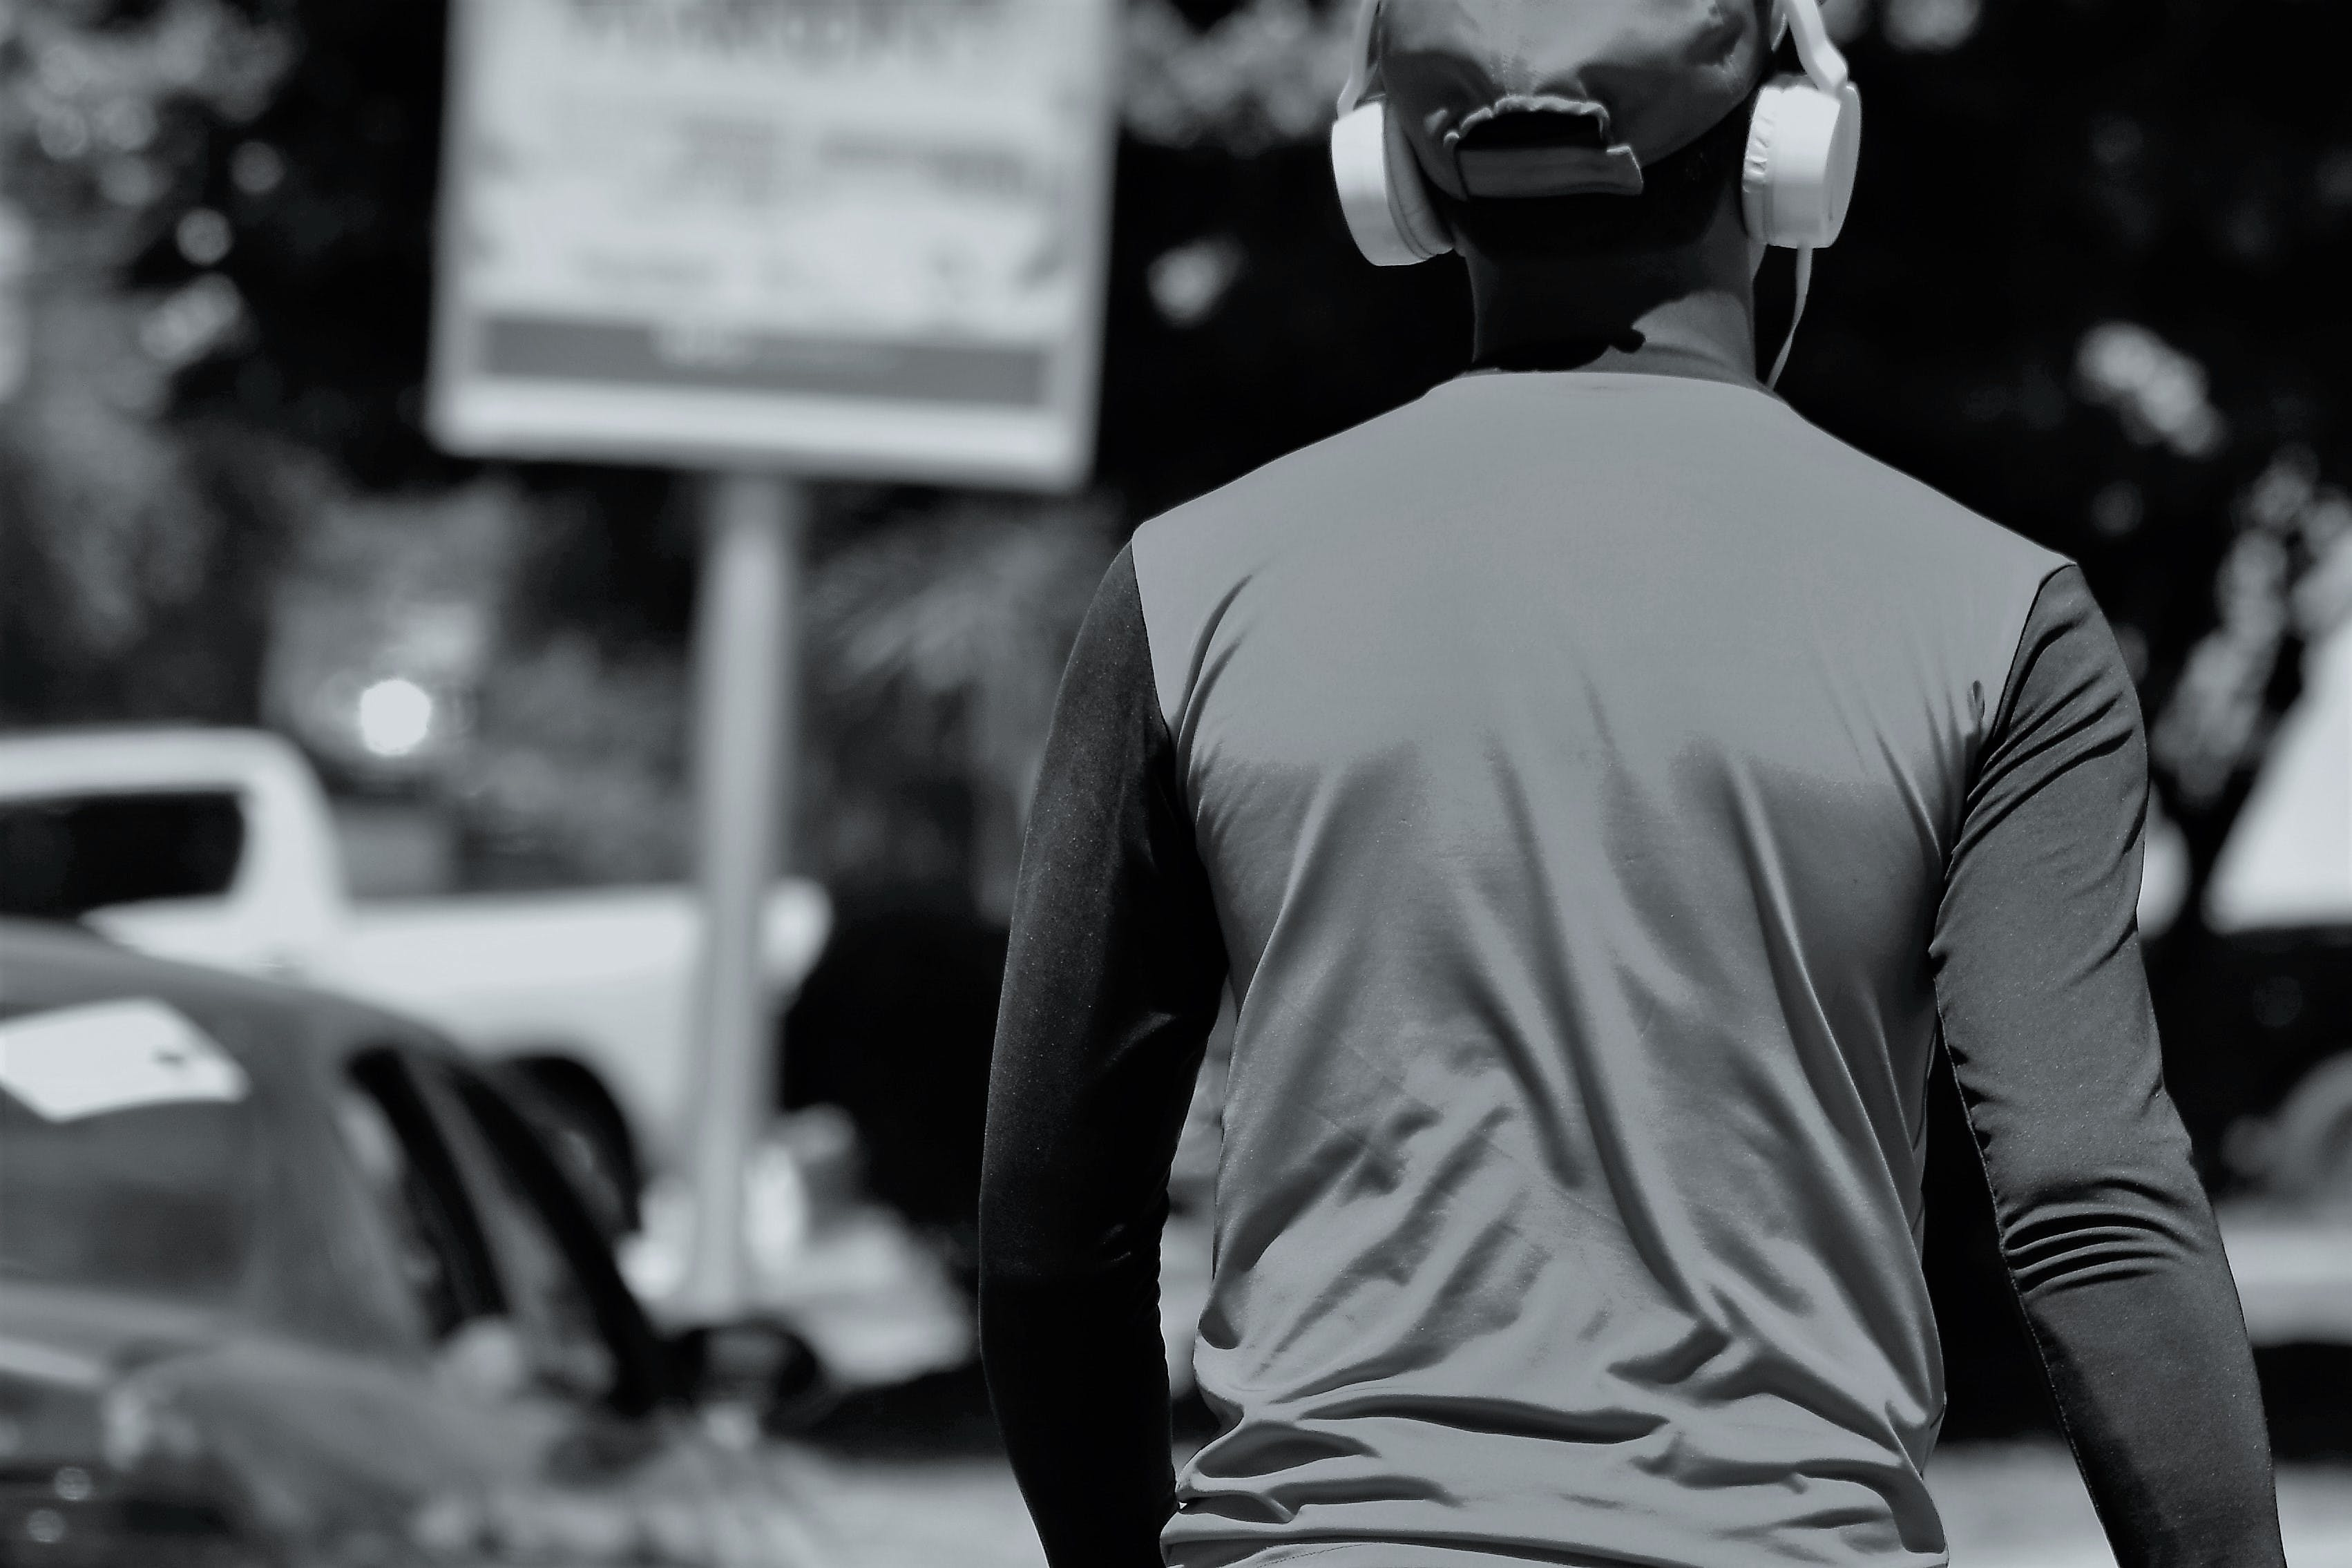 Monochrome Photography of Person's Back